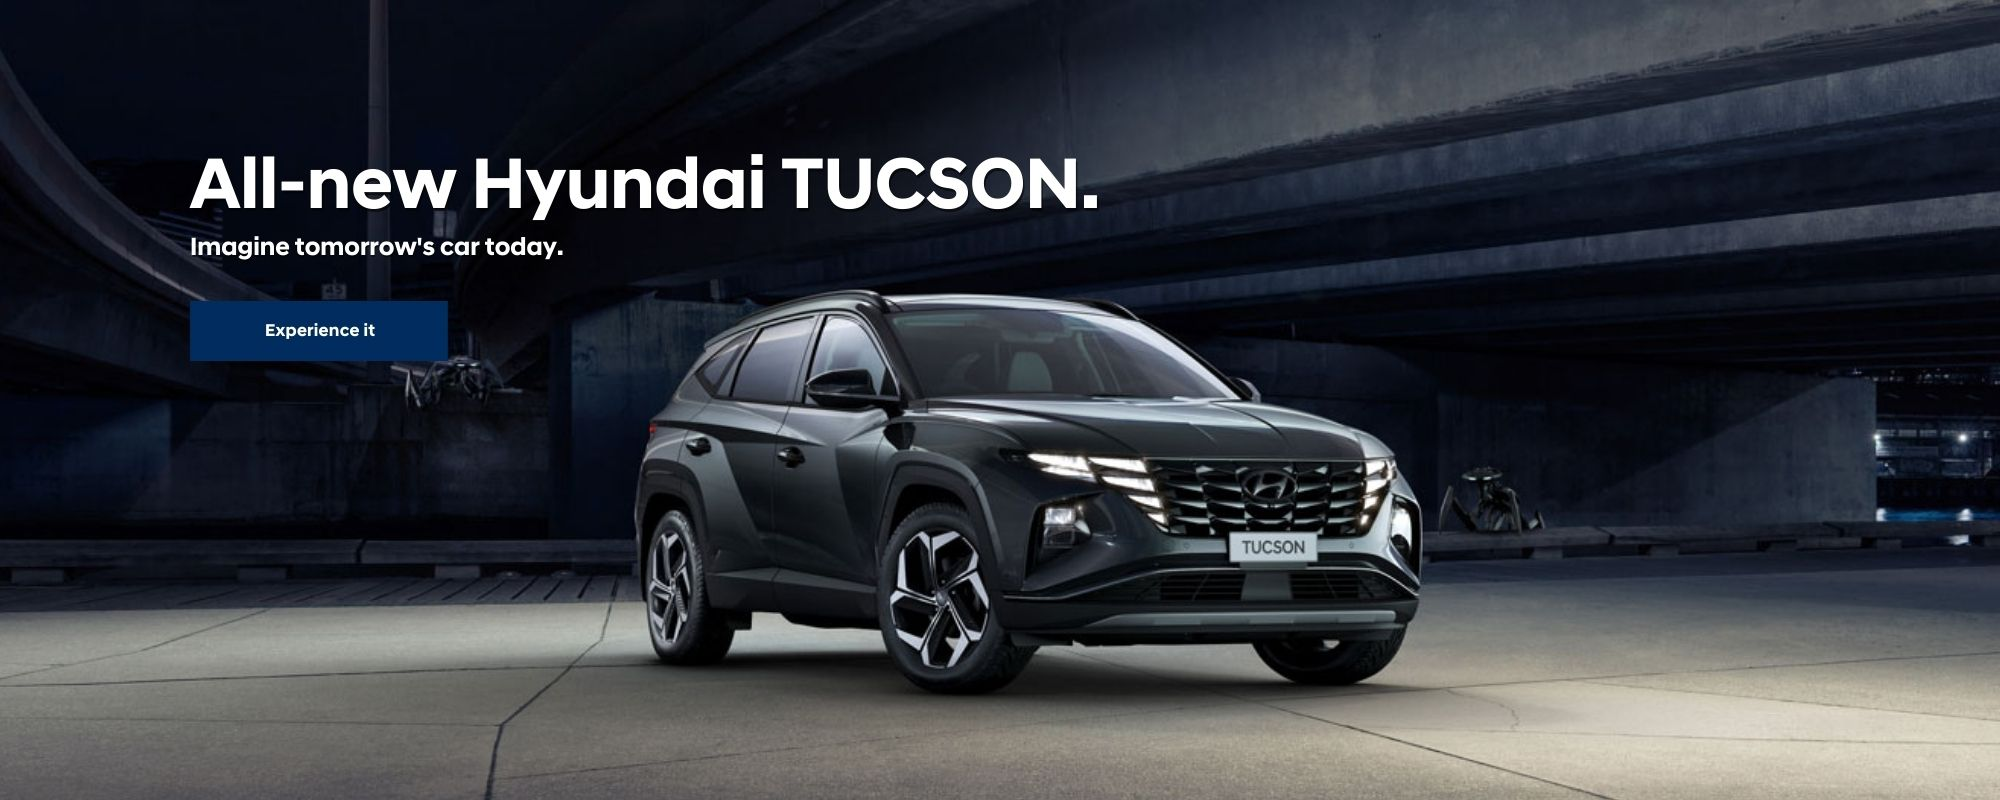 All-new Hyundai TUCSON.